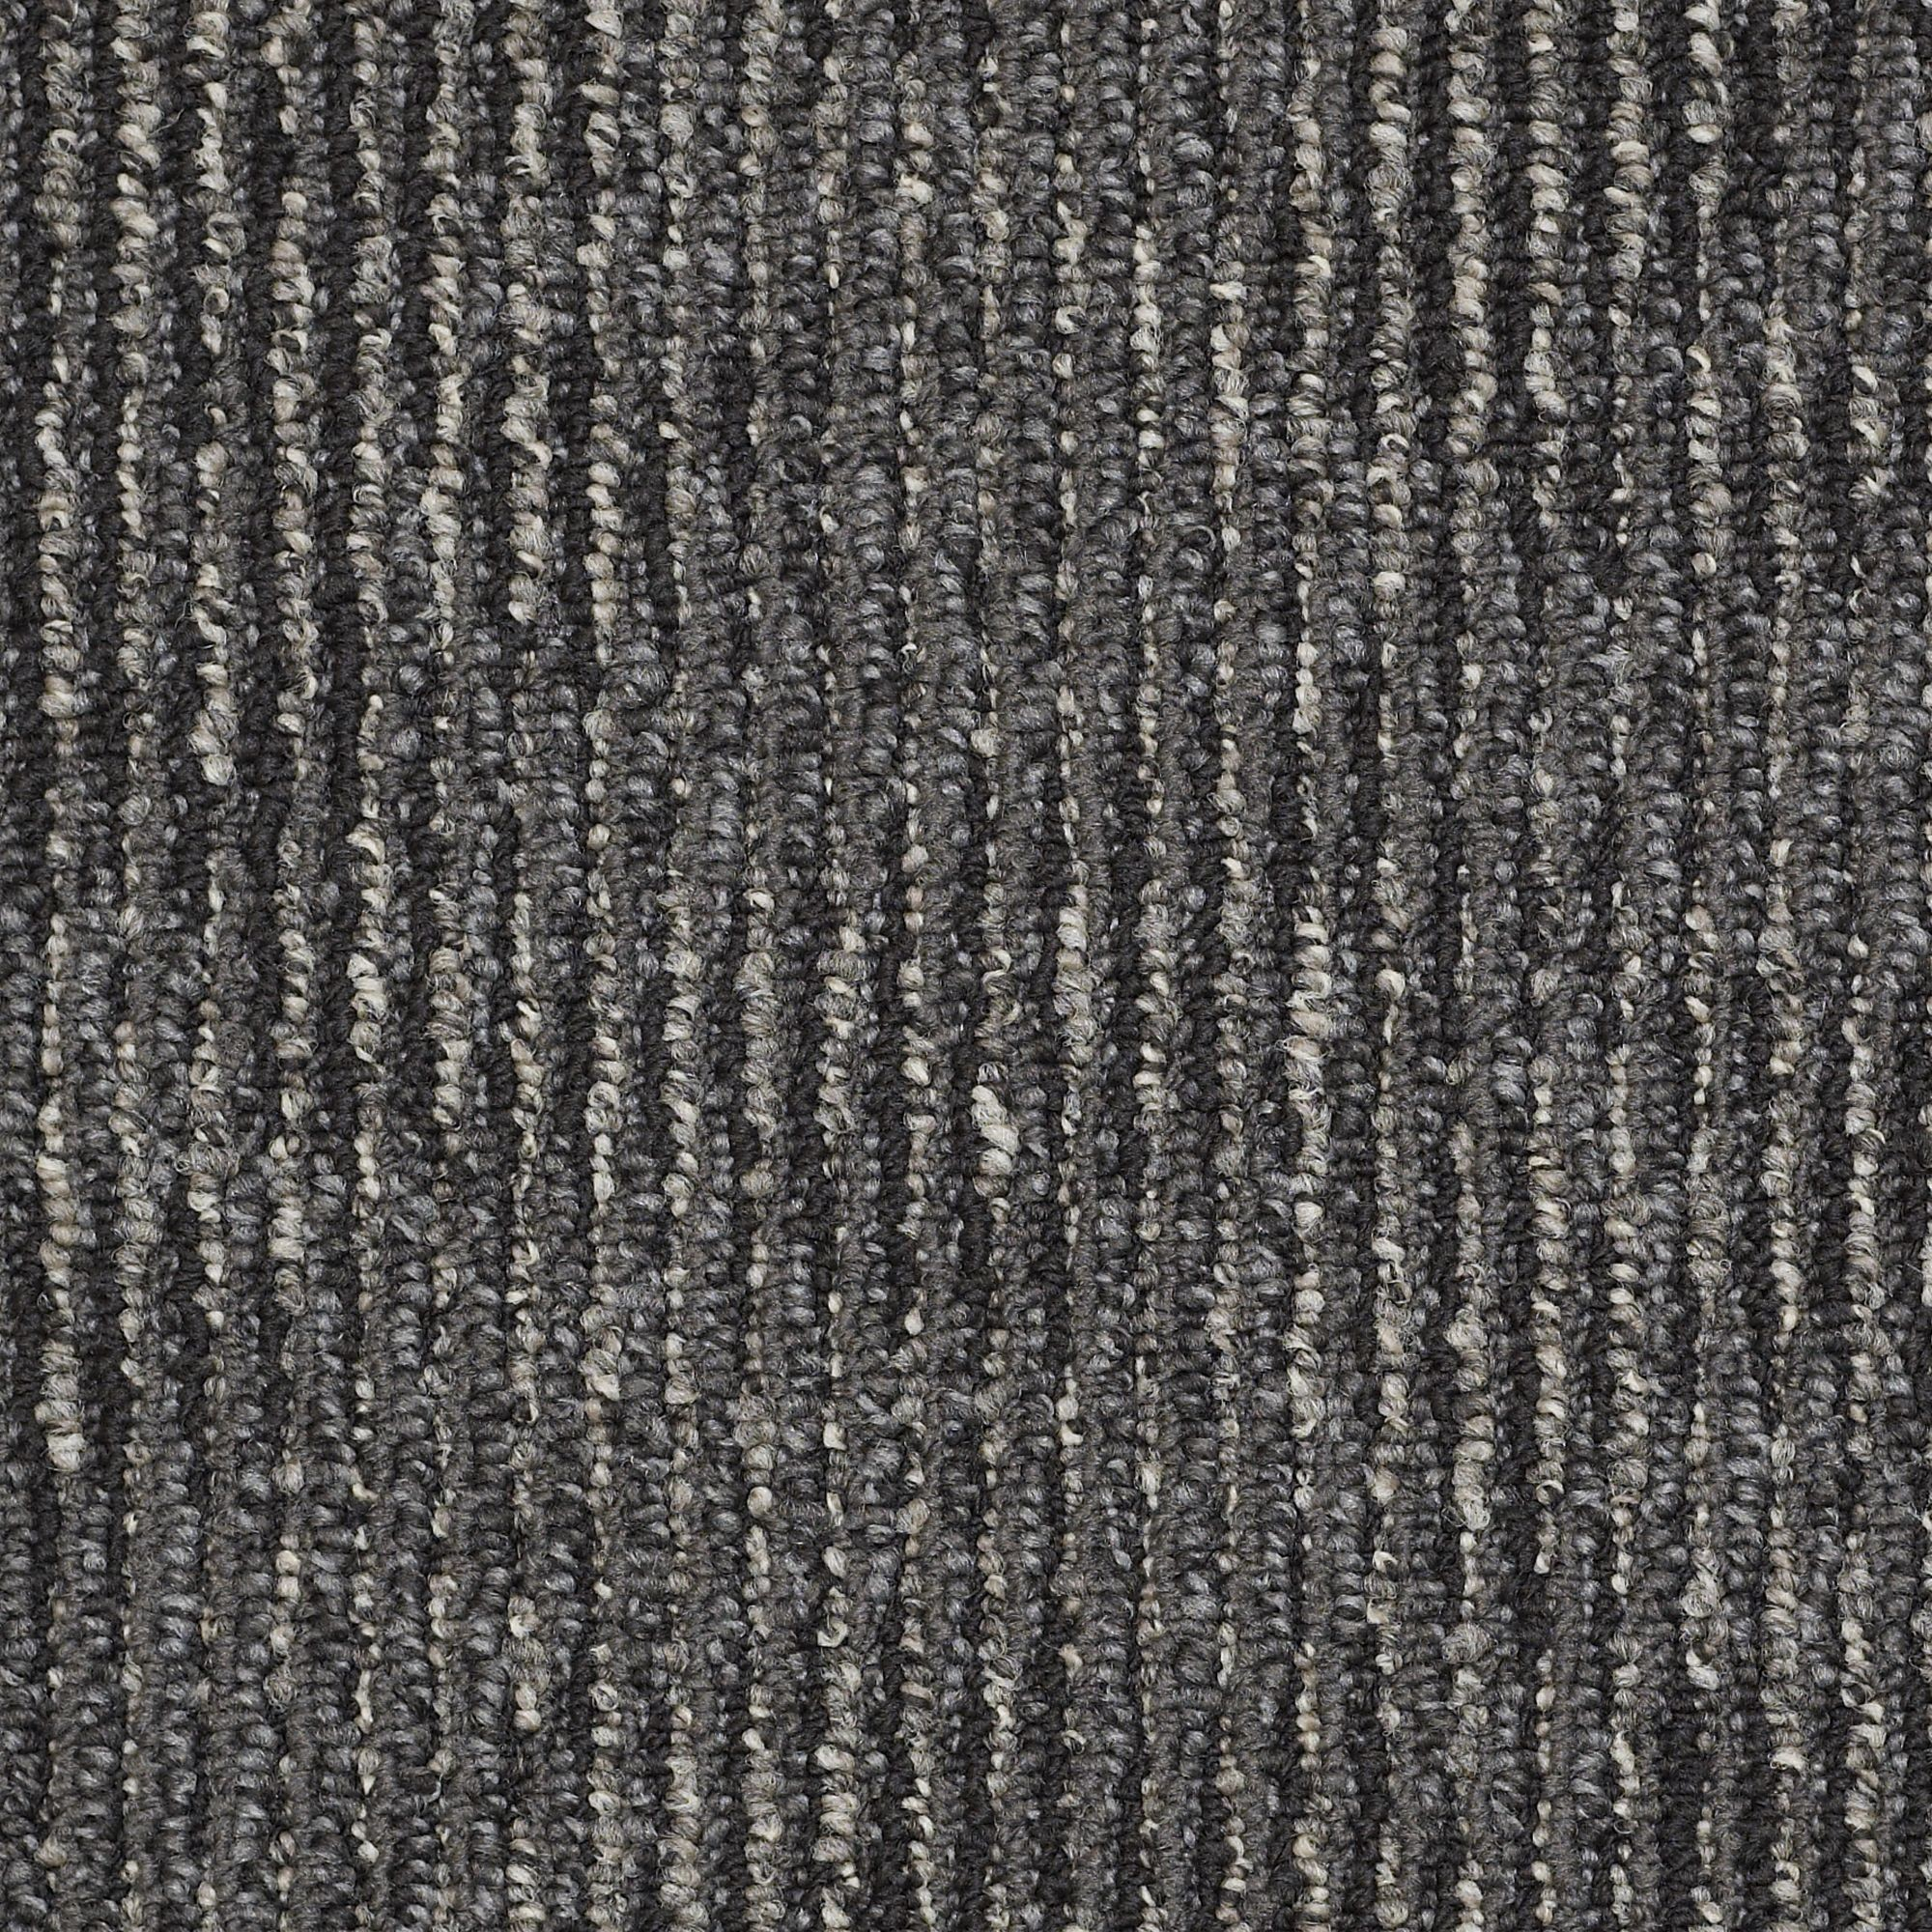 Ripple Effect Tile J0116  Color 00501 Carpet Tile